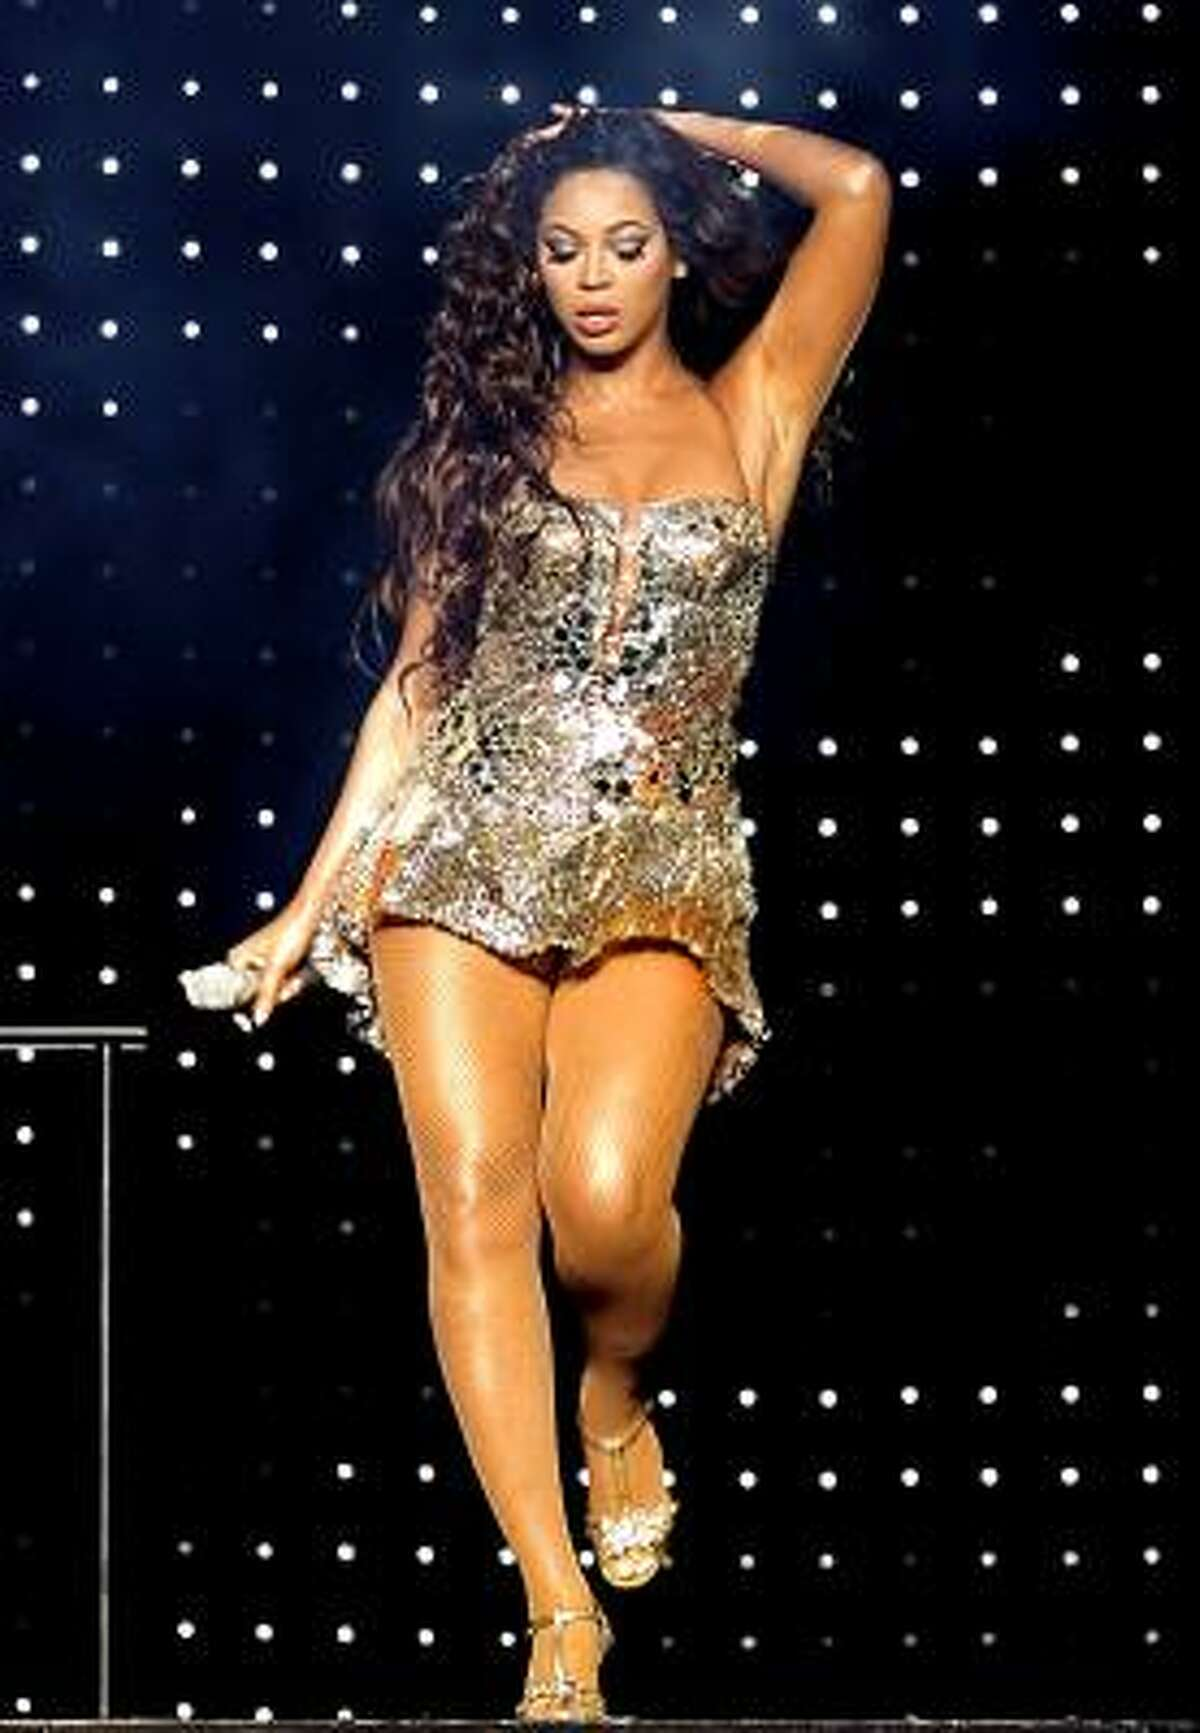 Leaders in Malaysia are worried about Beyoncé's concert attire, like this number she wore during a New York show Aug. 4.